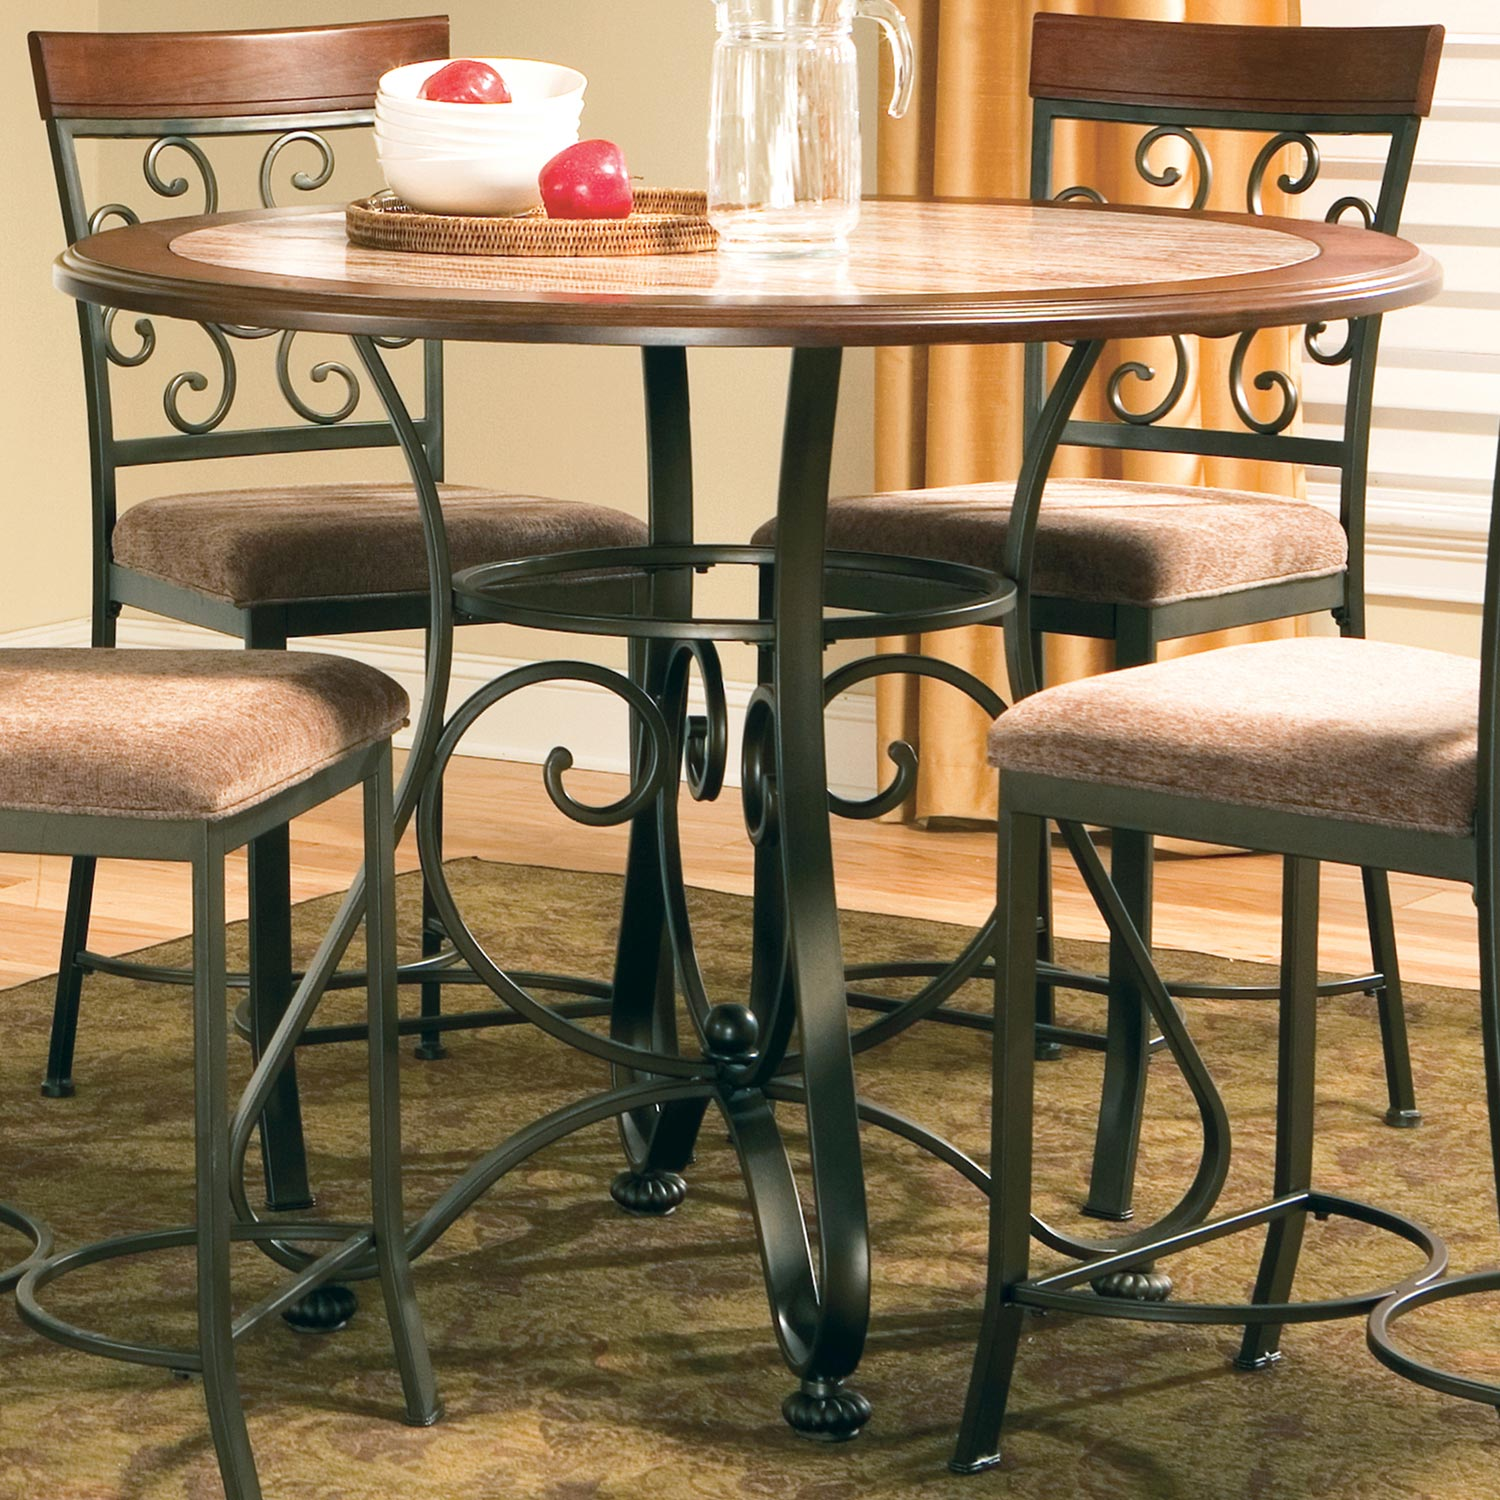 Thompson Round Counter Table Cherry Top Wrought Iron Base Dcg Stores